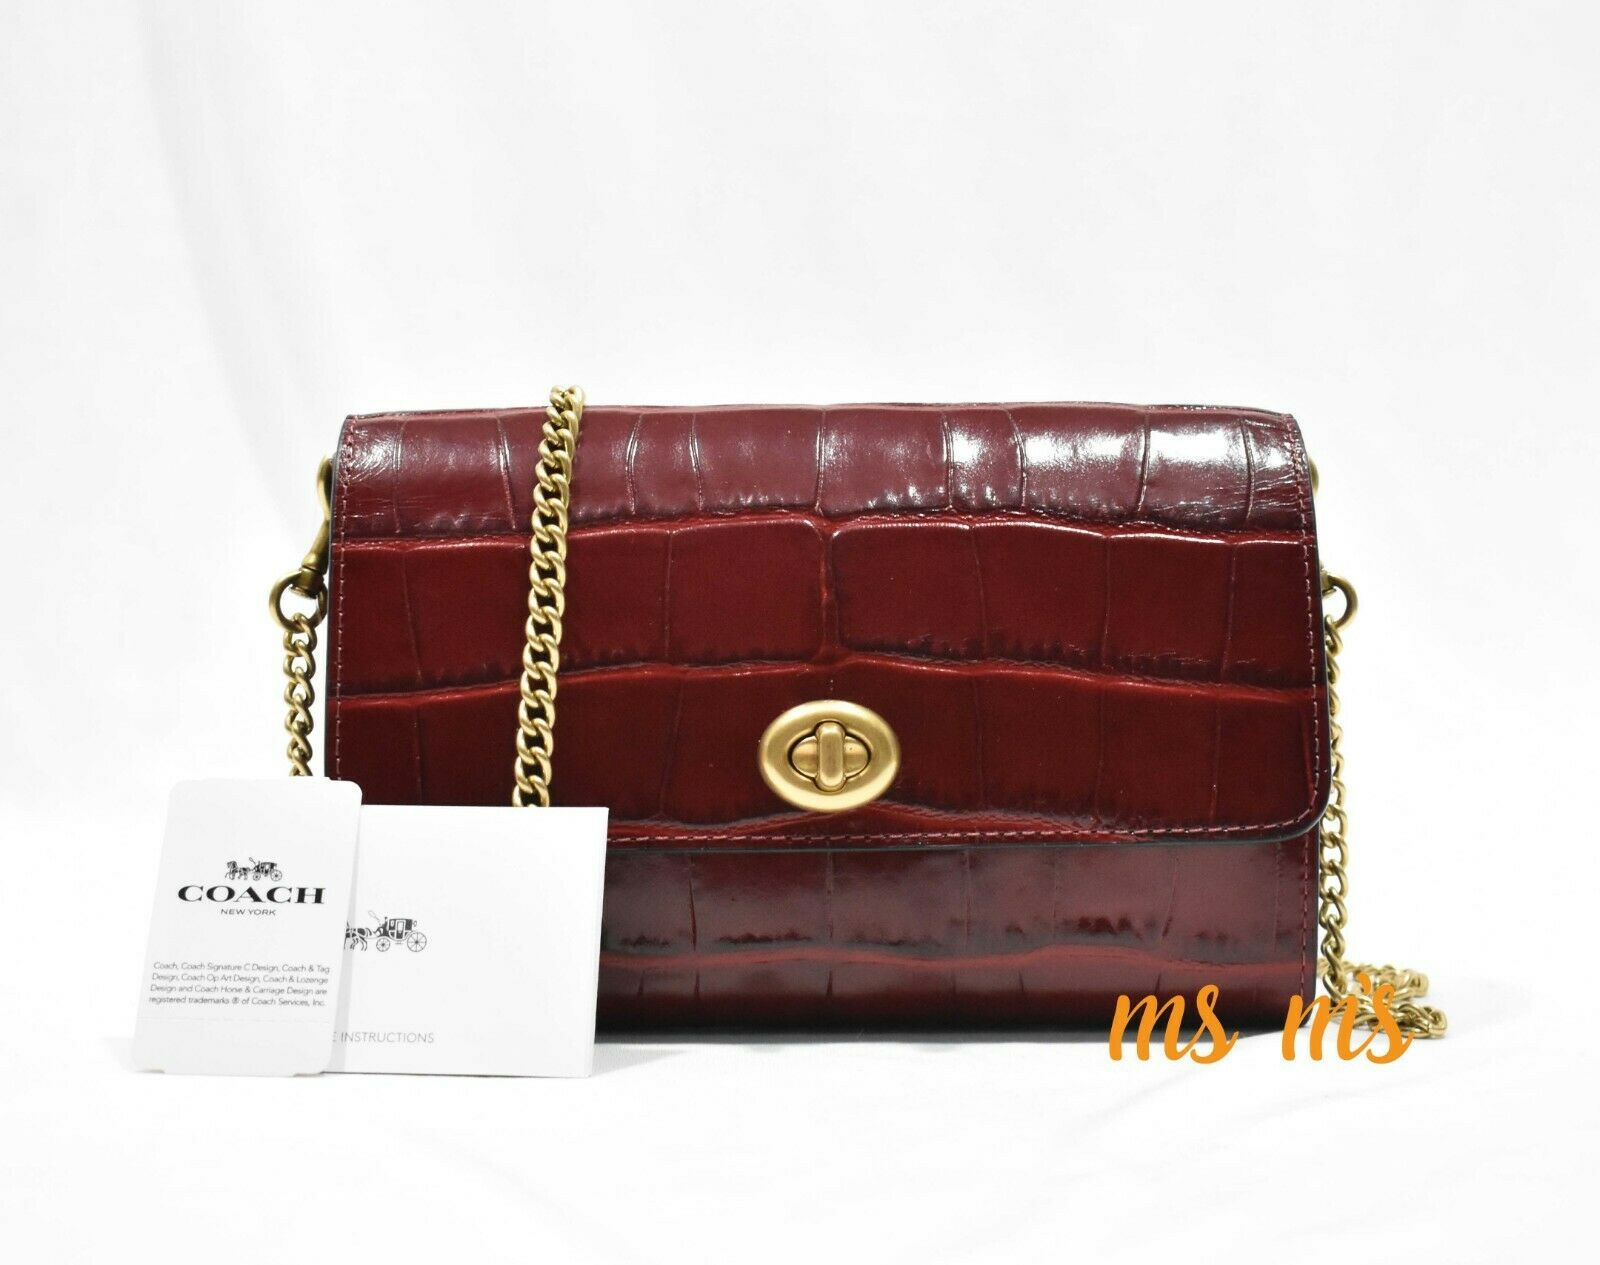 NWT Coach 1941 Croc-Embossed Turnlock Chain Crossbody Bag